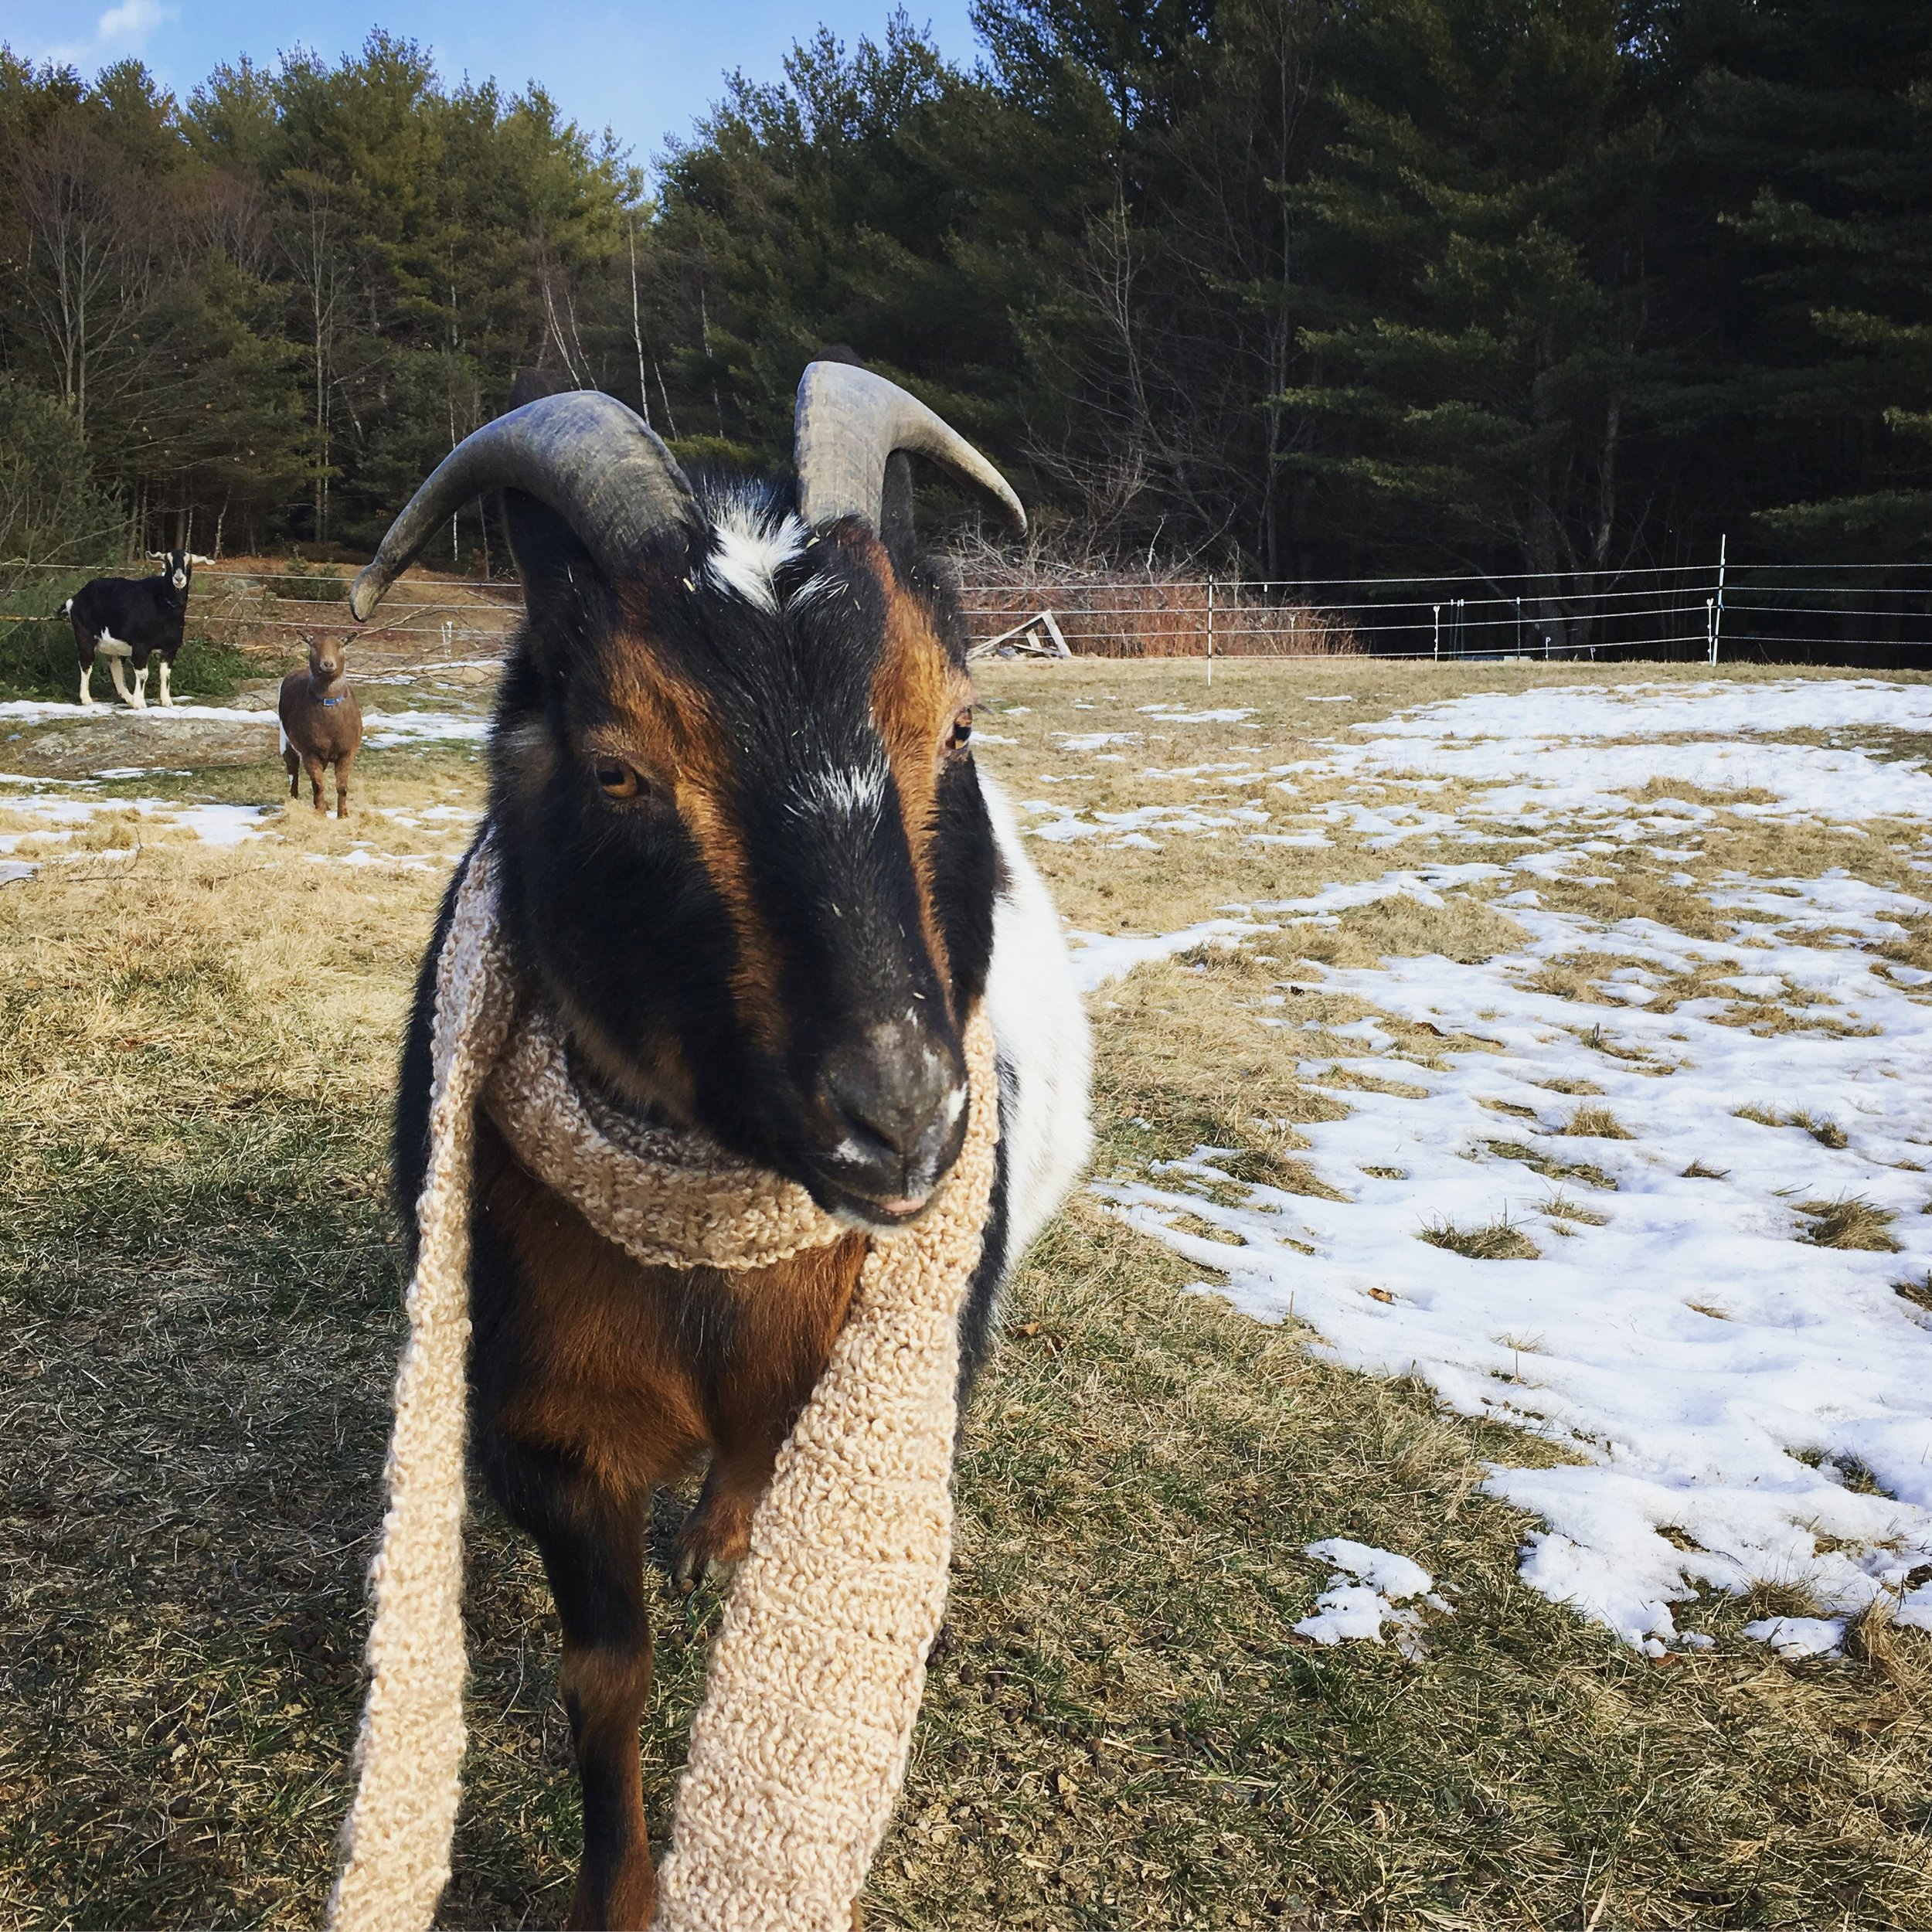 Willy is getting the hang of it, though his tongue is still sticking out a bit. But clearly the other goats are impressed with his skills.